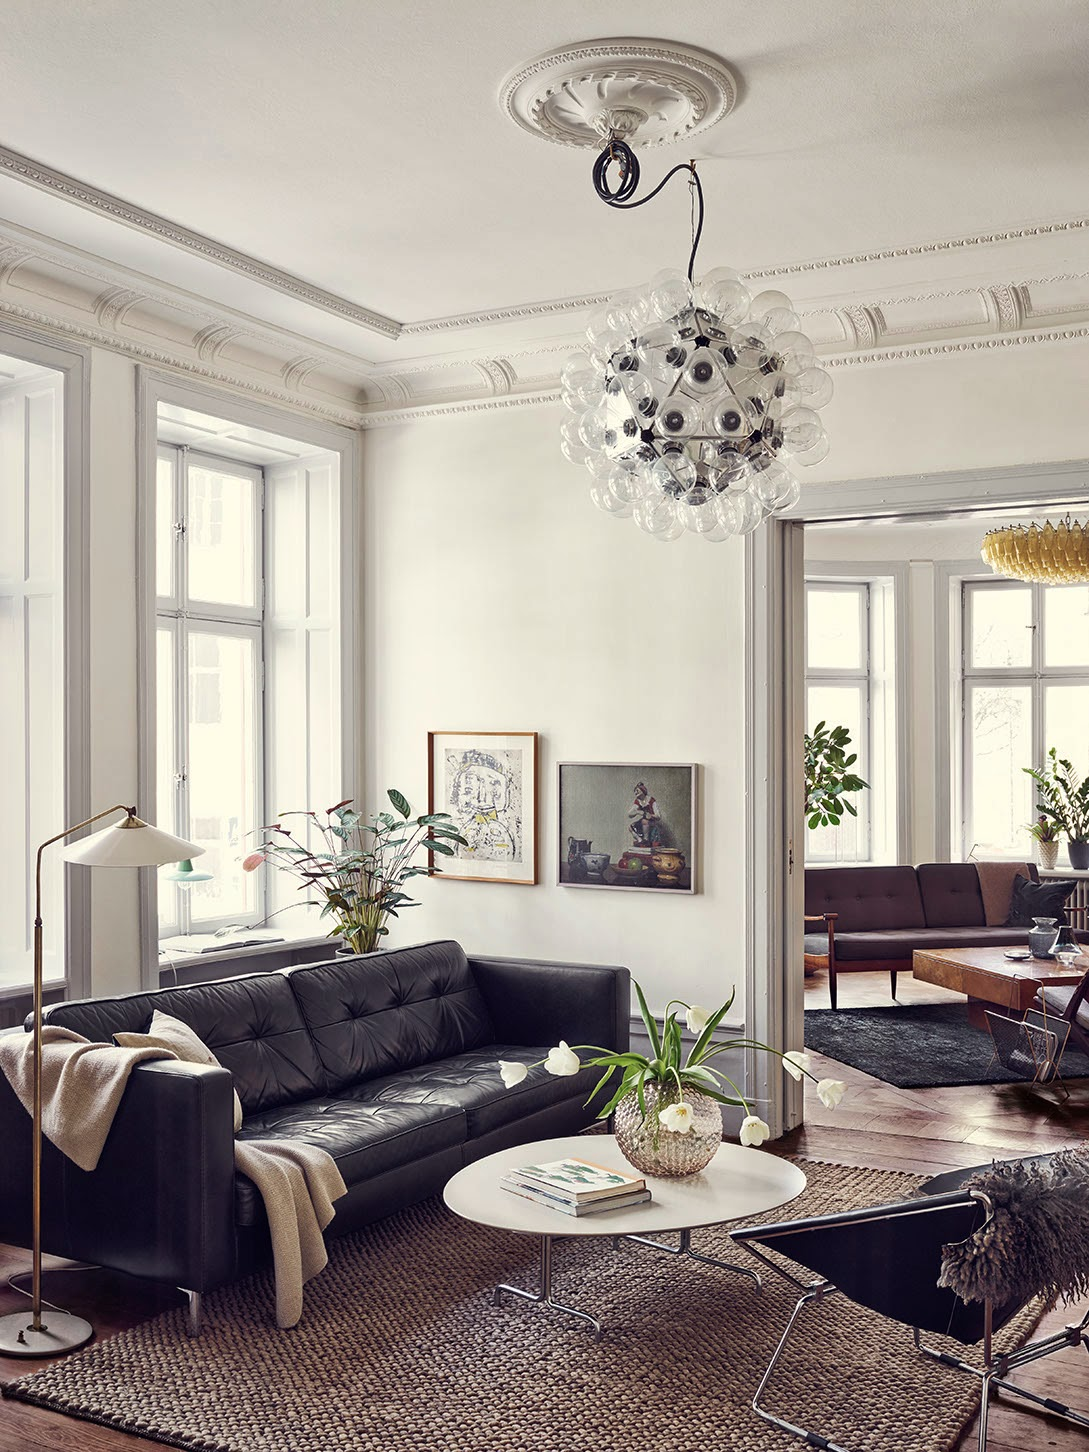 http://www.myscandinavianhome.com/2014/03/the-palatial-home-of-stockholm-stylist.html